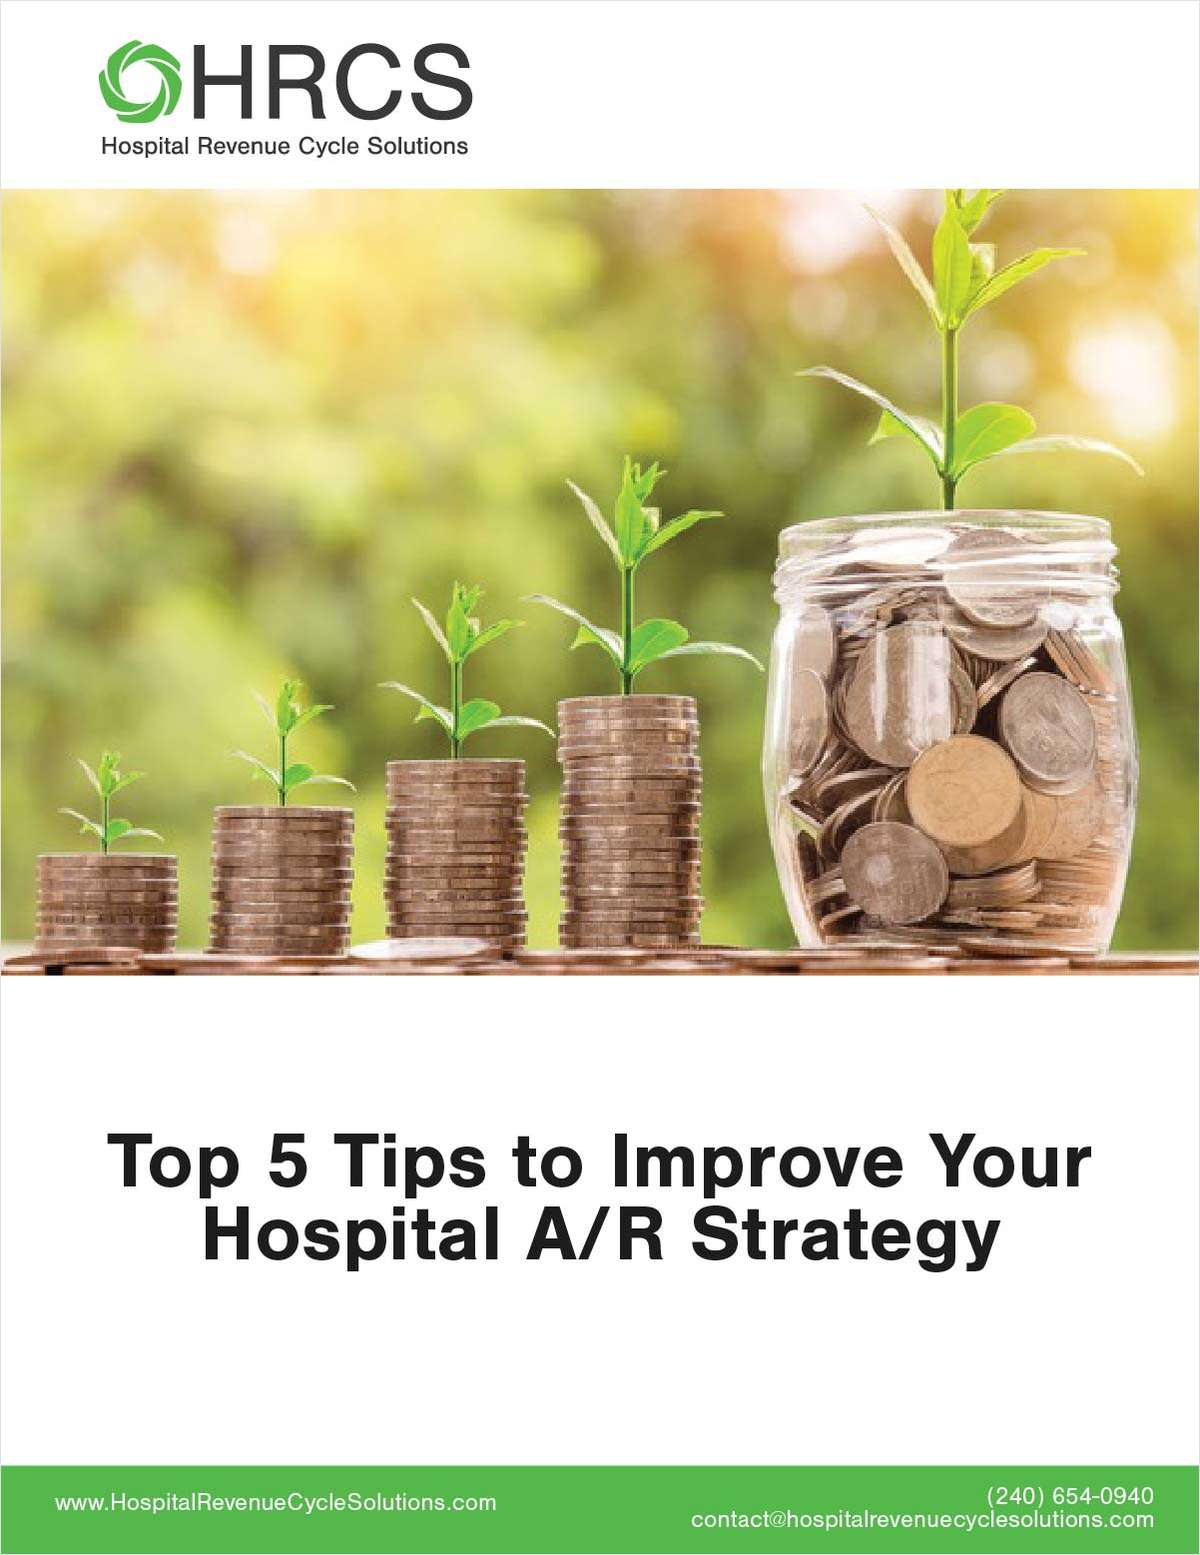 Top 5 Tips to Improve Your Hospital A/R Strategy